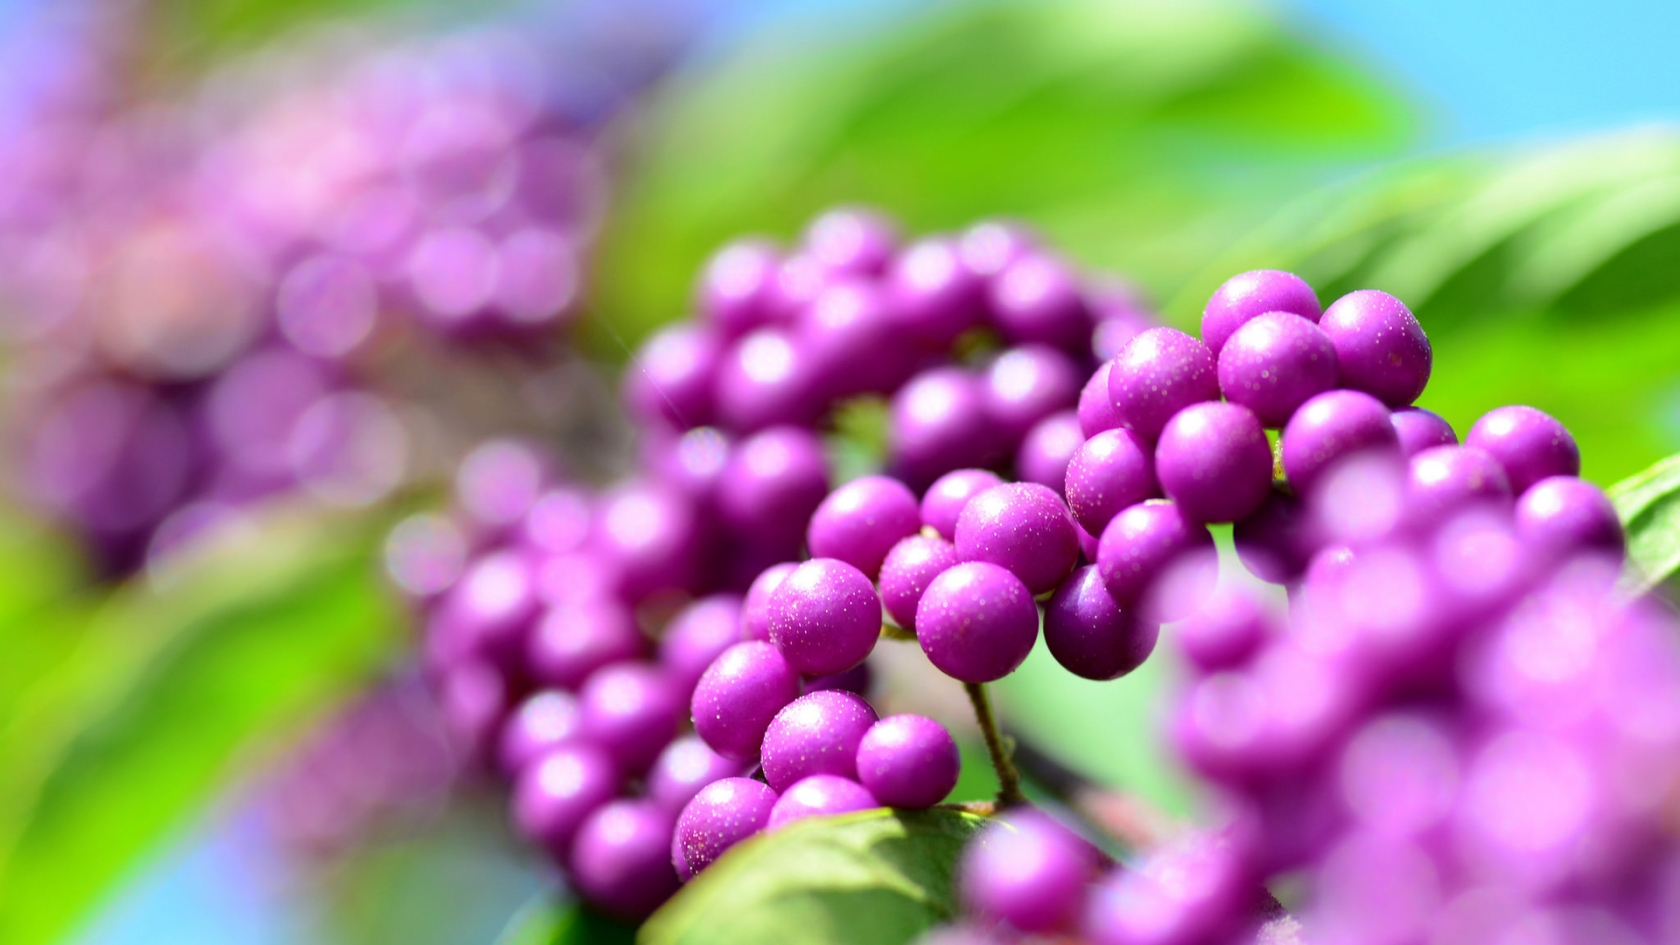 Callicarpa Berries for 1680 x 945 HDTV resolution